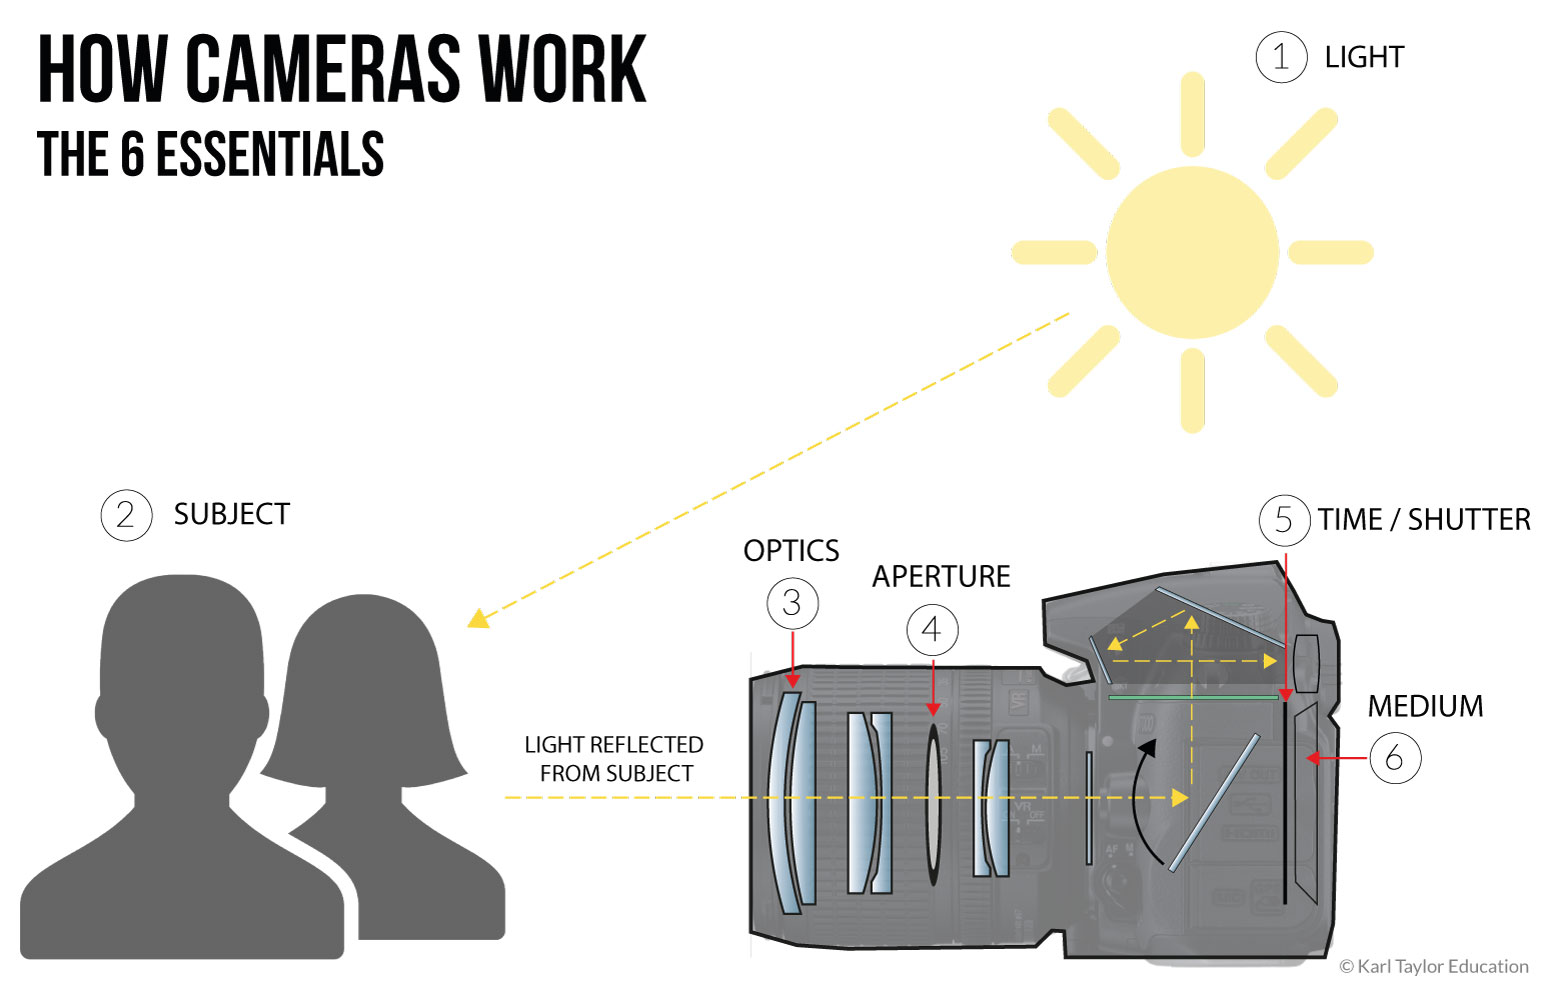 How cameras work diagram